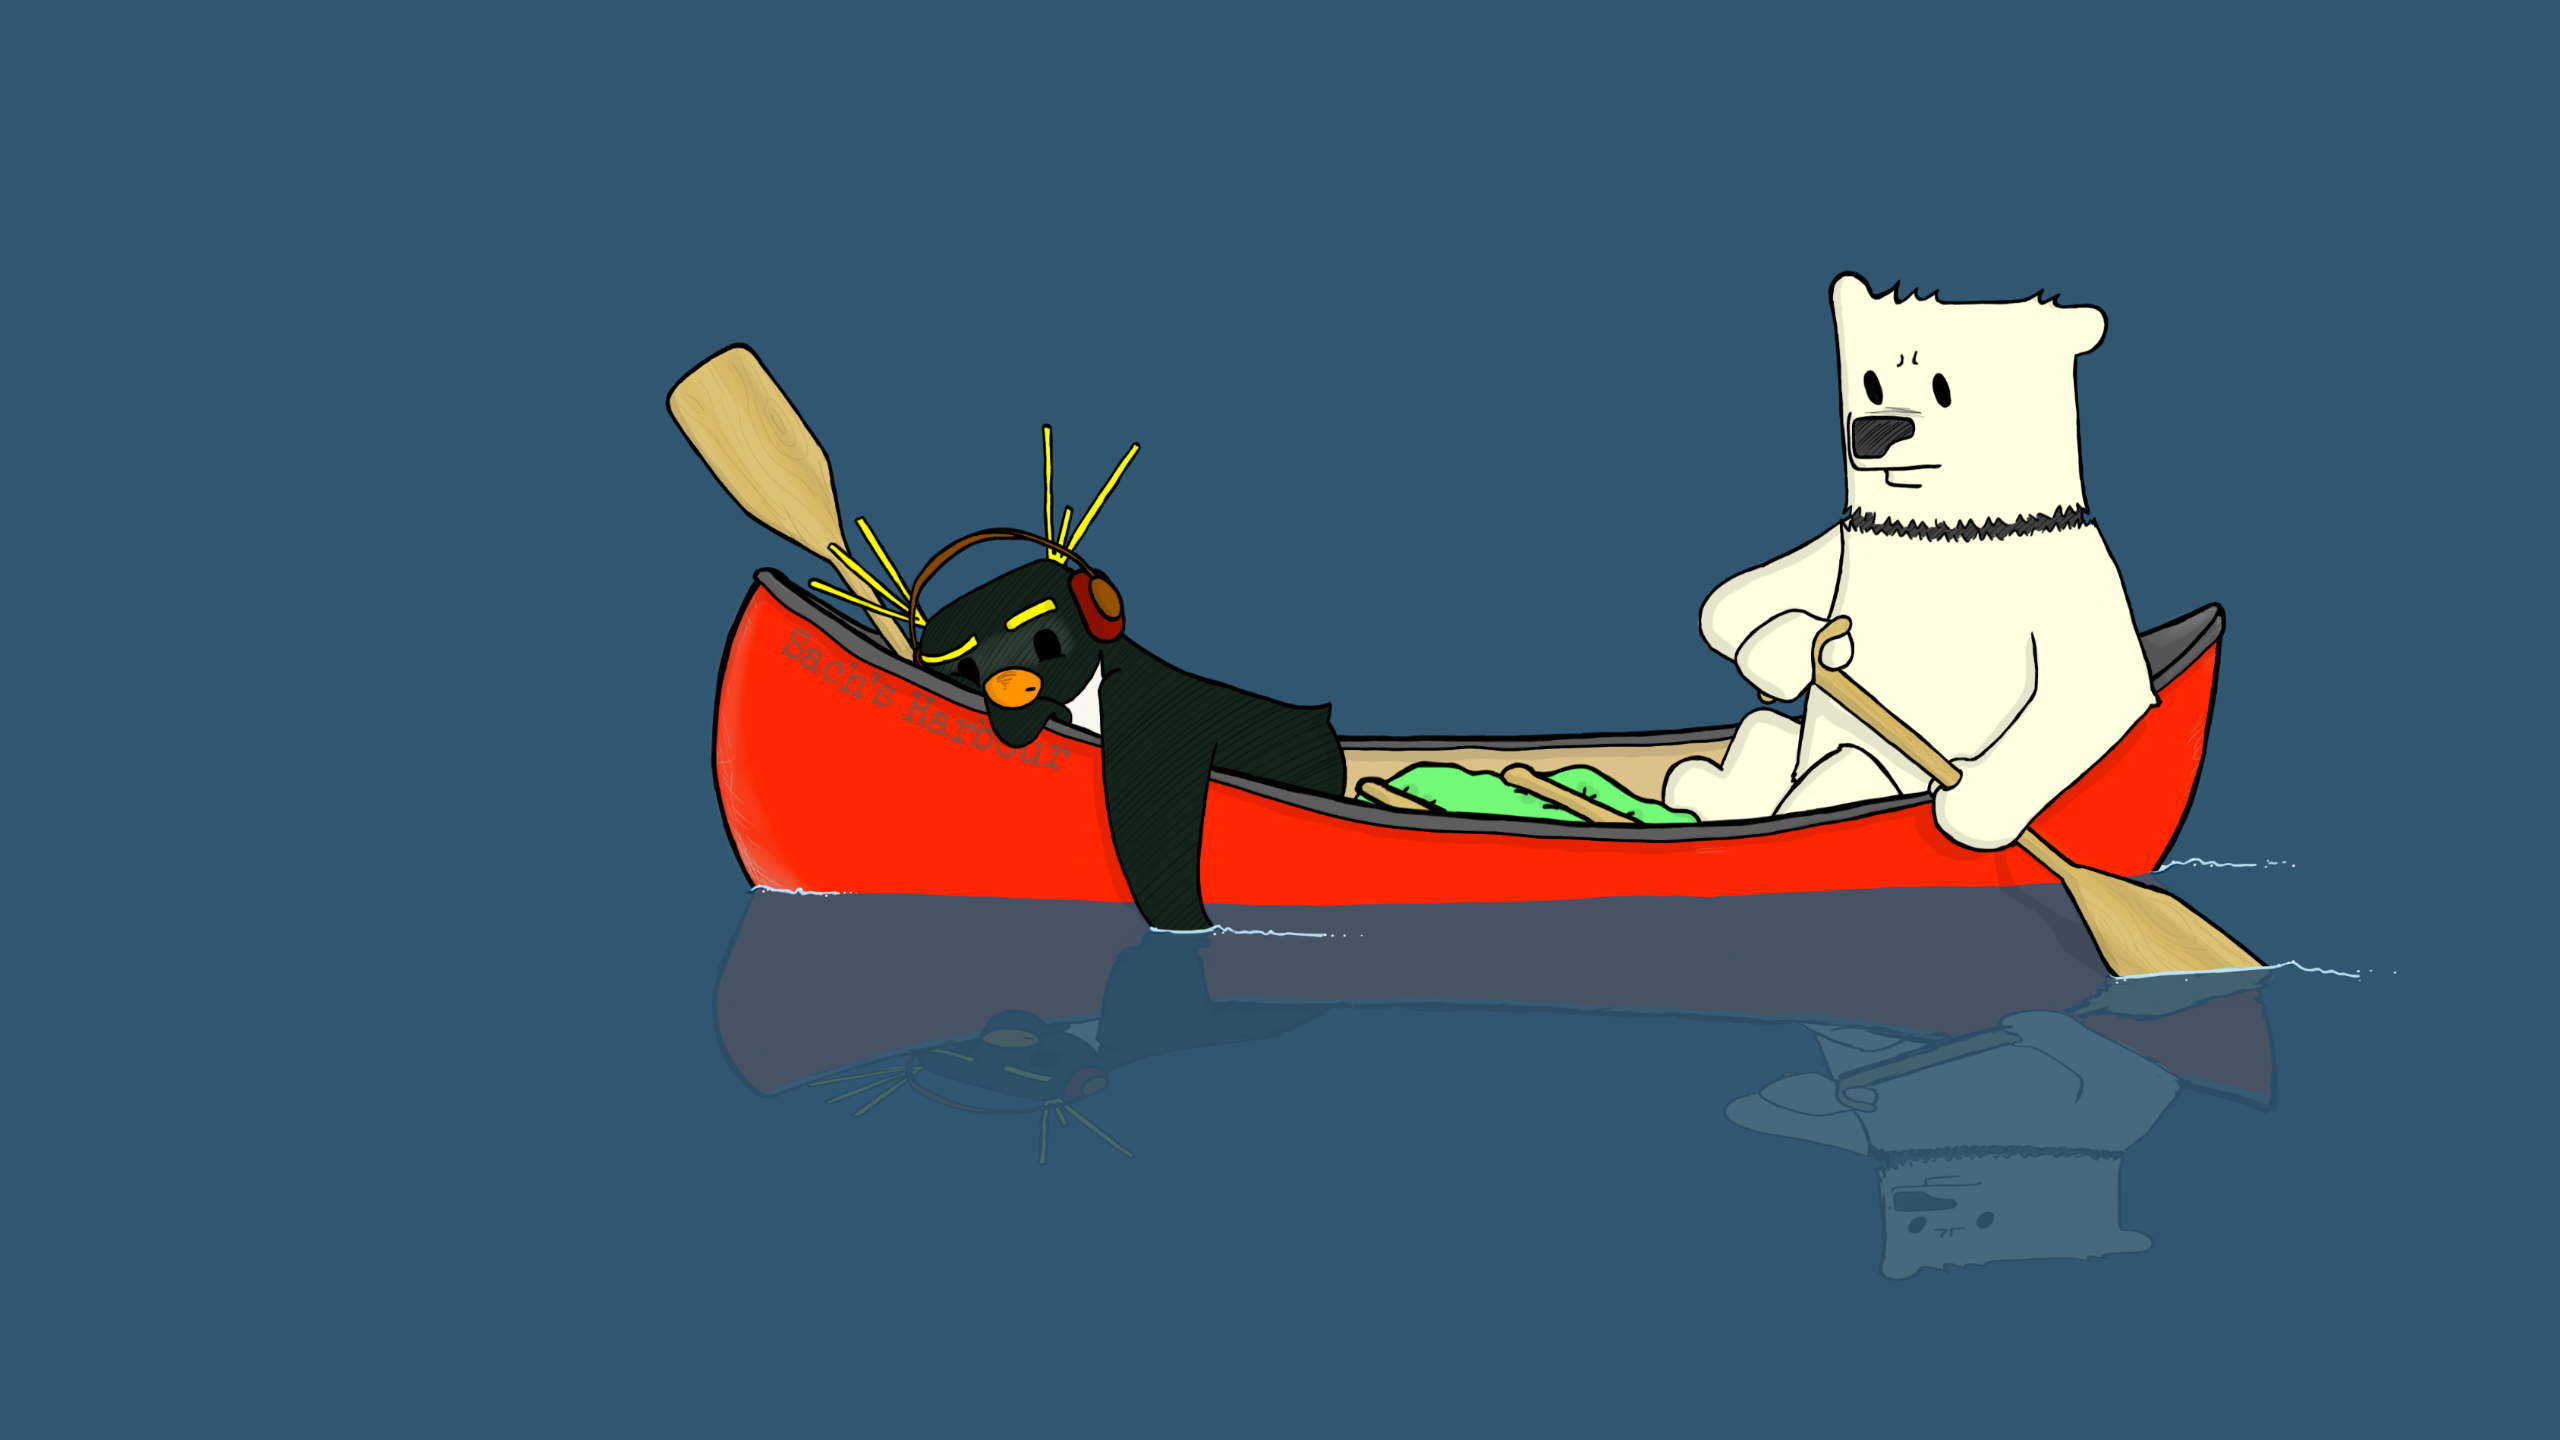 canoe-desktop-widescreen